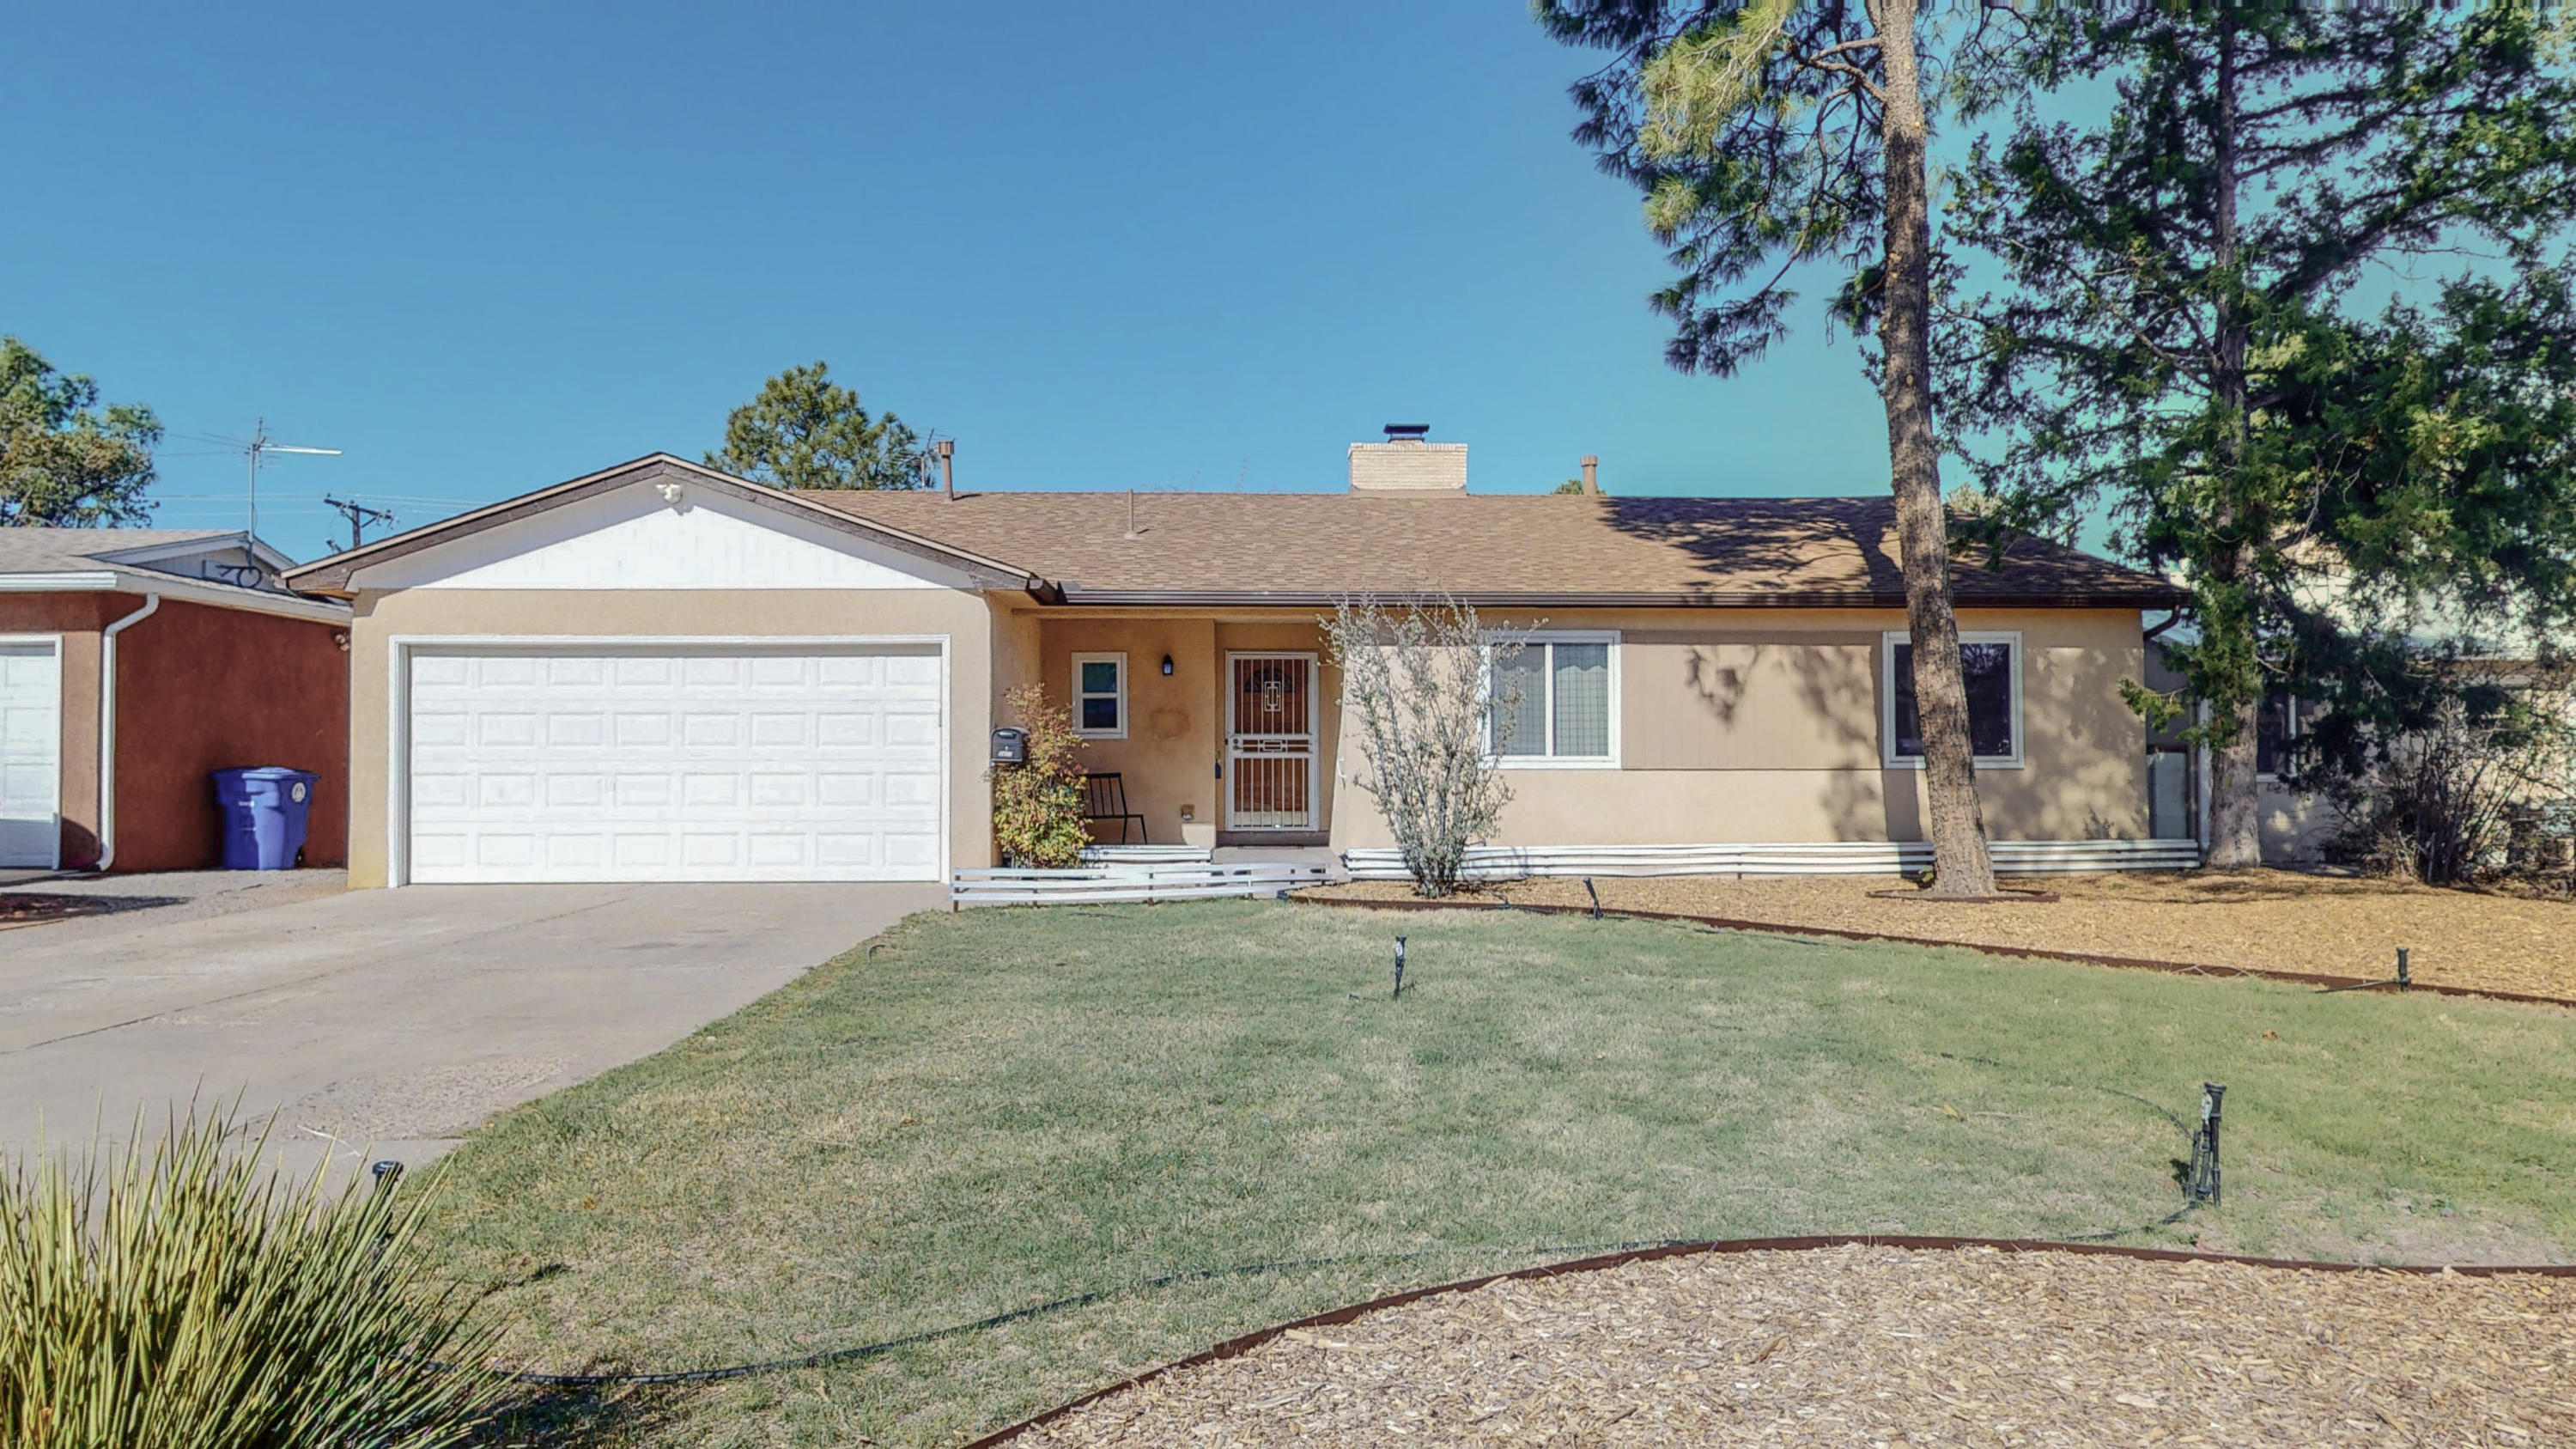 OPEN HOUSE SATURDAY, 4/17/2021 2:00 - 4:00.  Come take a look at this North Campus beauty with wood floors throughout the main house (except kitchen and baths which are tile), thermal windows, UPDATED kitchen!! BUT WAIT... check out the in-law quarters just off the kitchen.  It has it's own side entrance with a ramp.  Could also make a great home office. Floorplan is uploaded to the MLS and there's a walk-around tour.